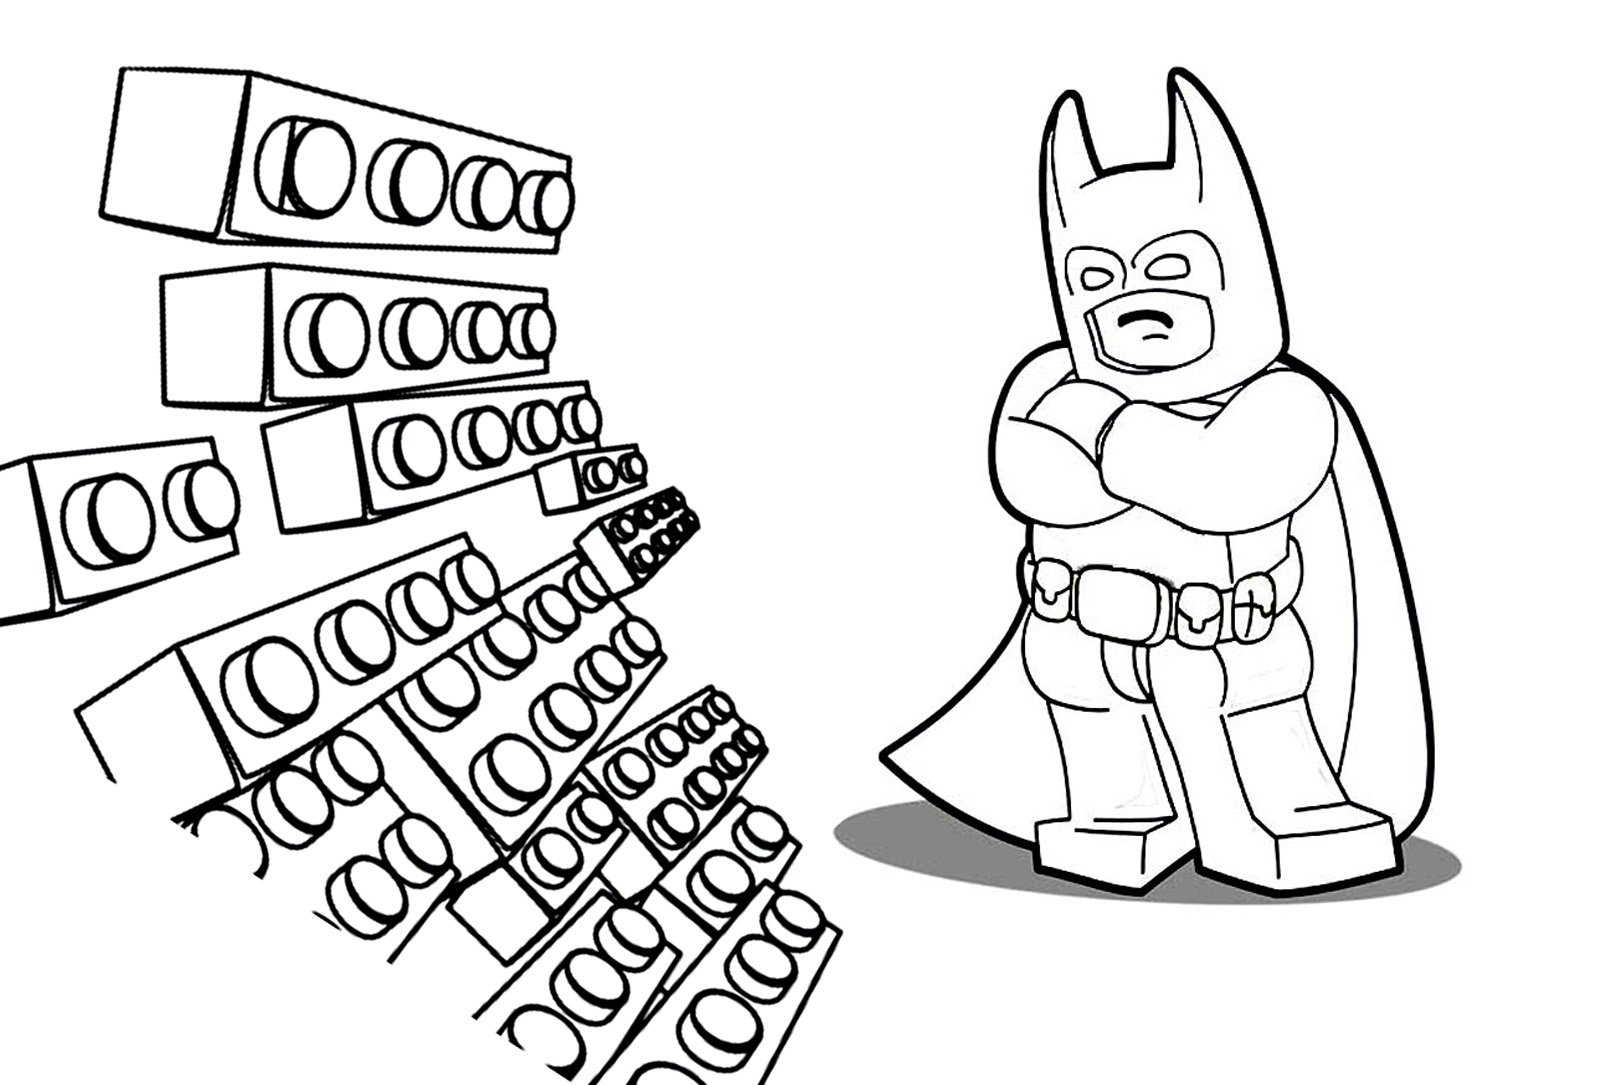 Lego movie coloring pages - Coloring for kids : coloring-adventure ...